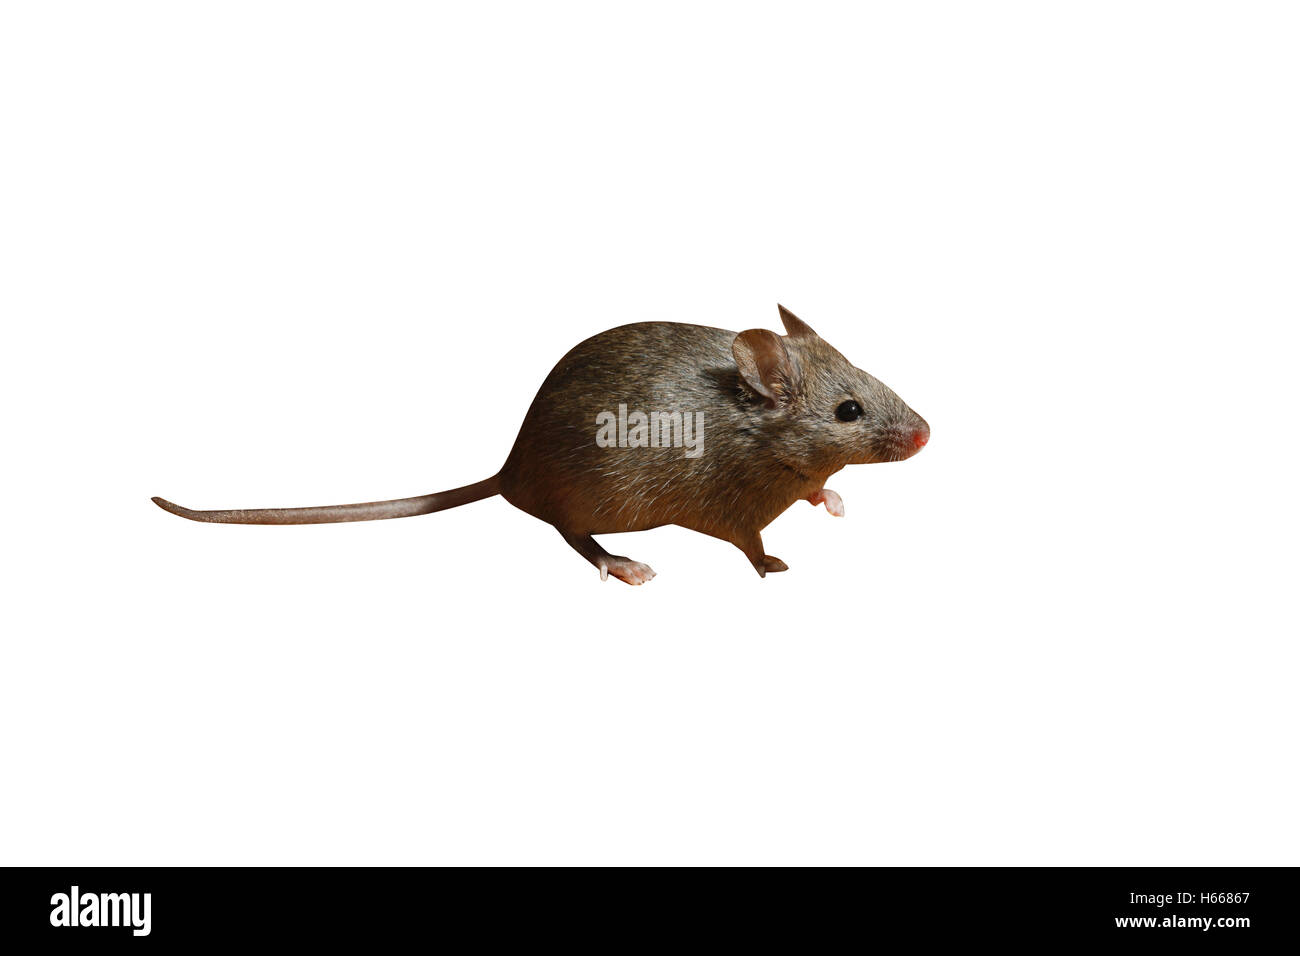 House mouse, Mus musculus, Midlands, UK - Stock Image